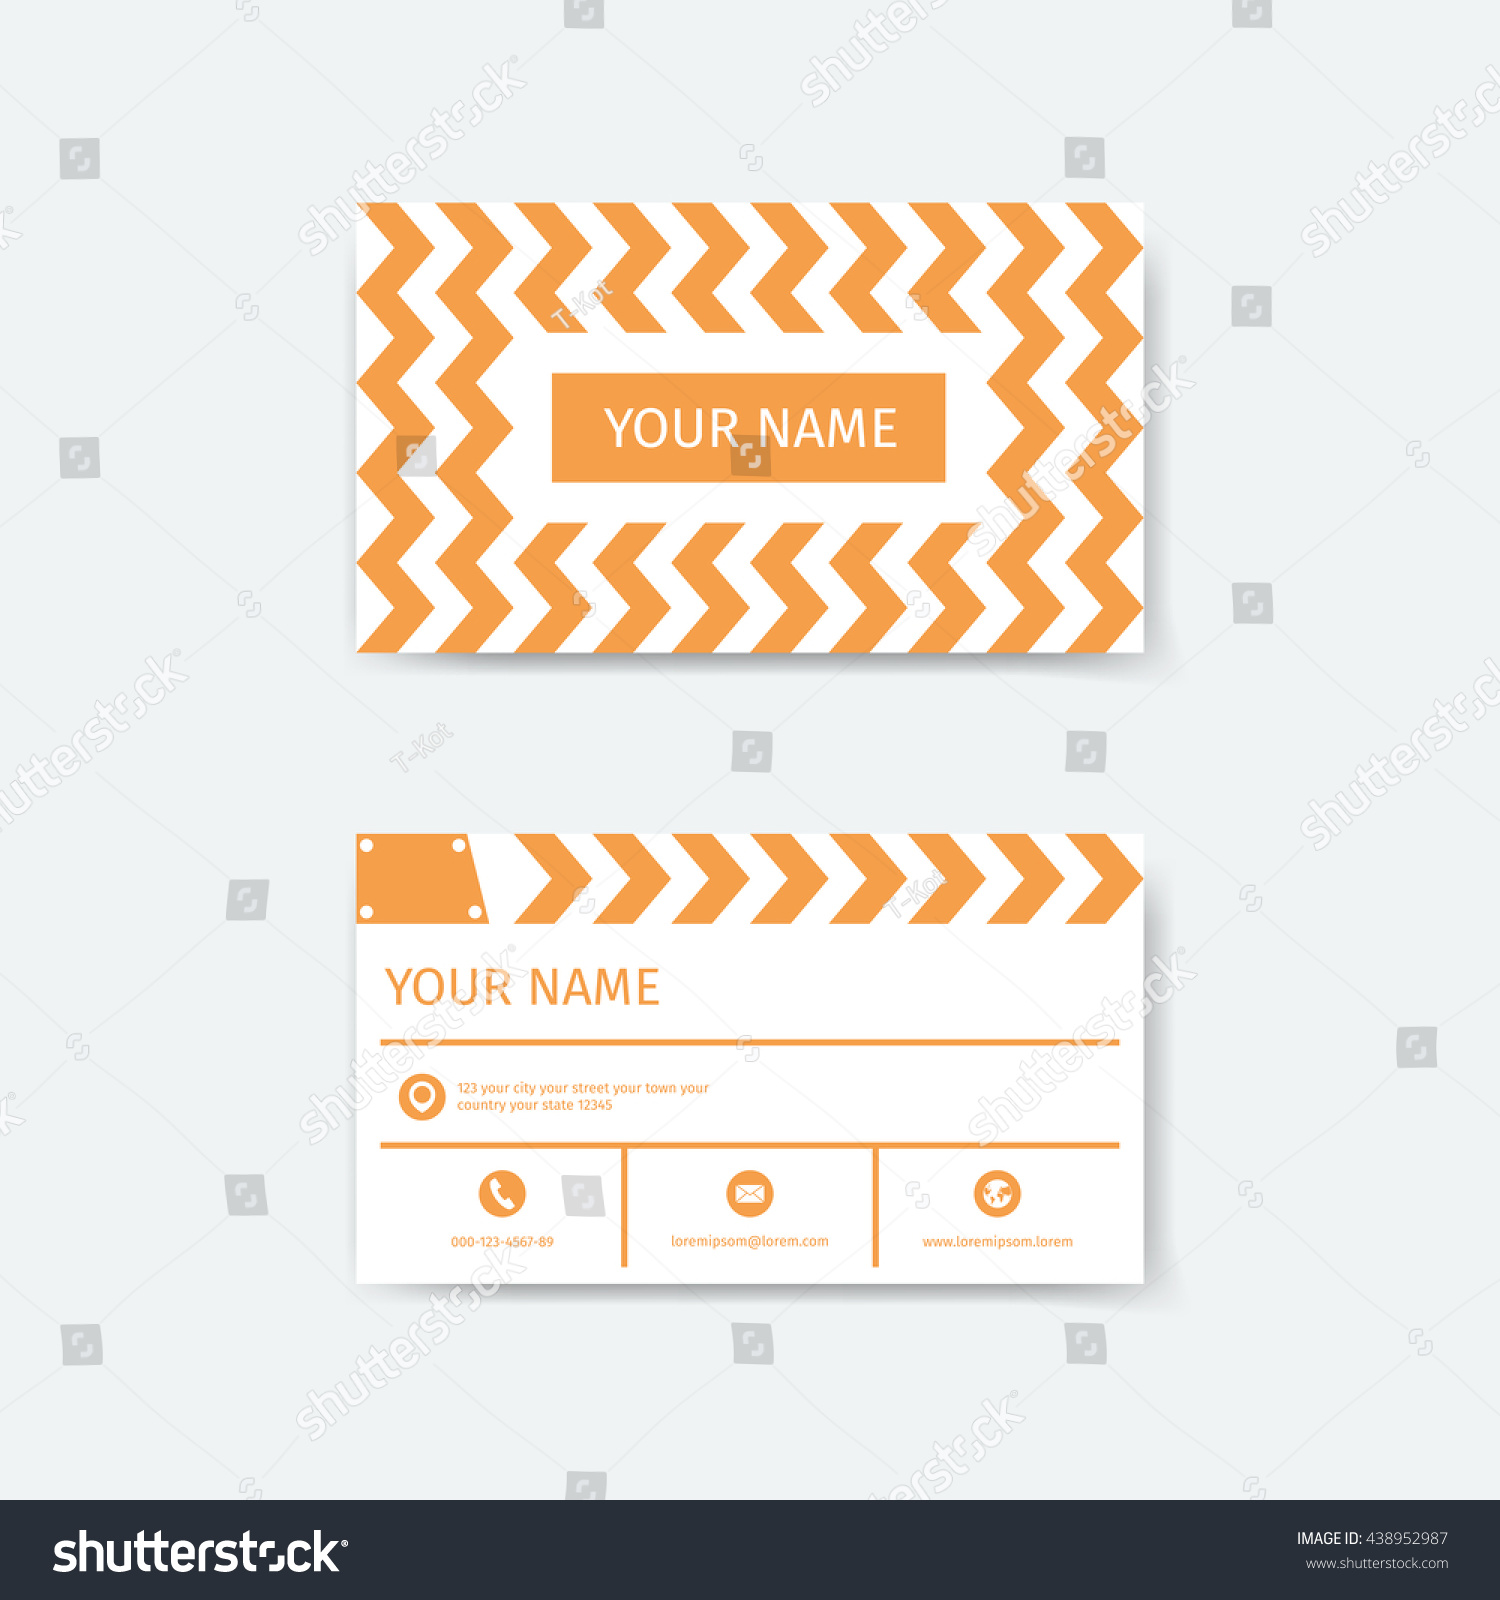 Business Card Design Template Clapboard Film Stock Vector 438952987 ...